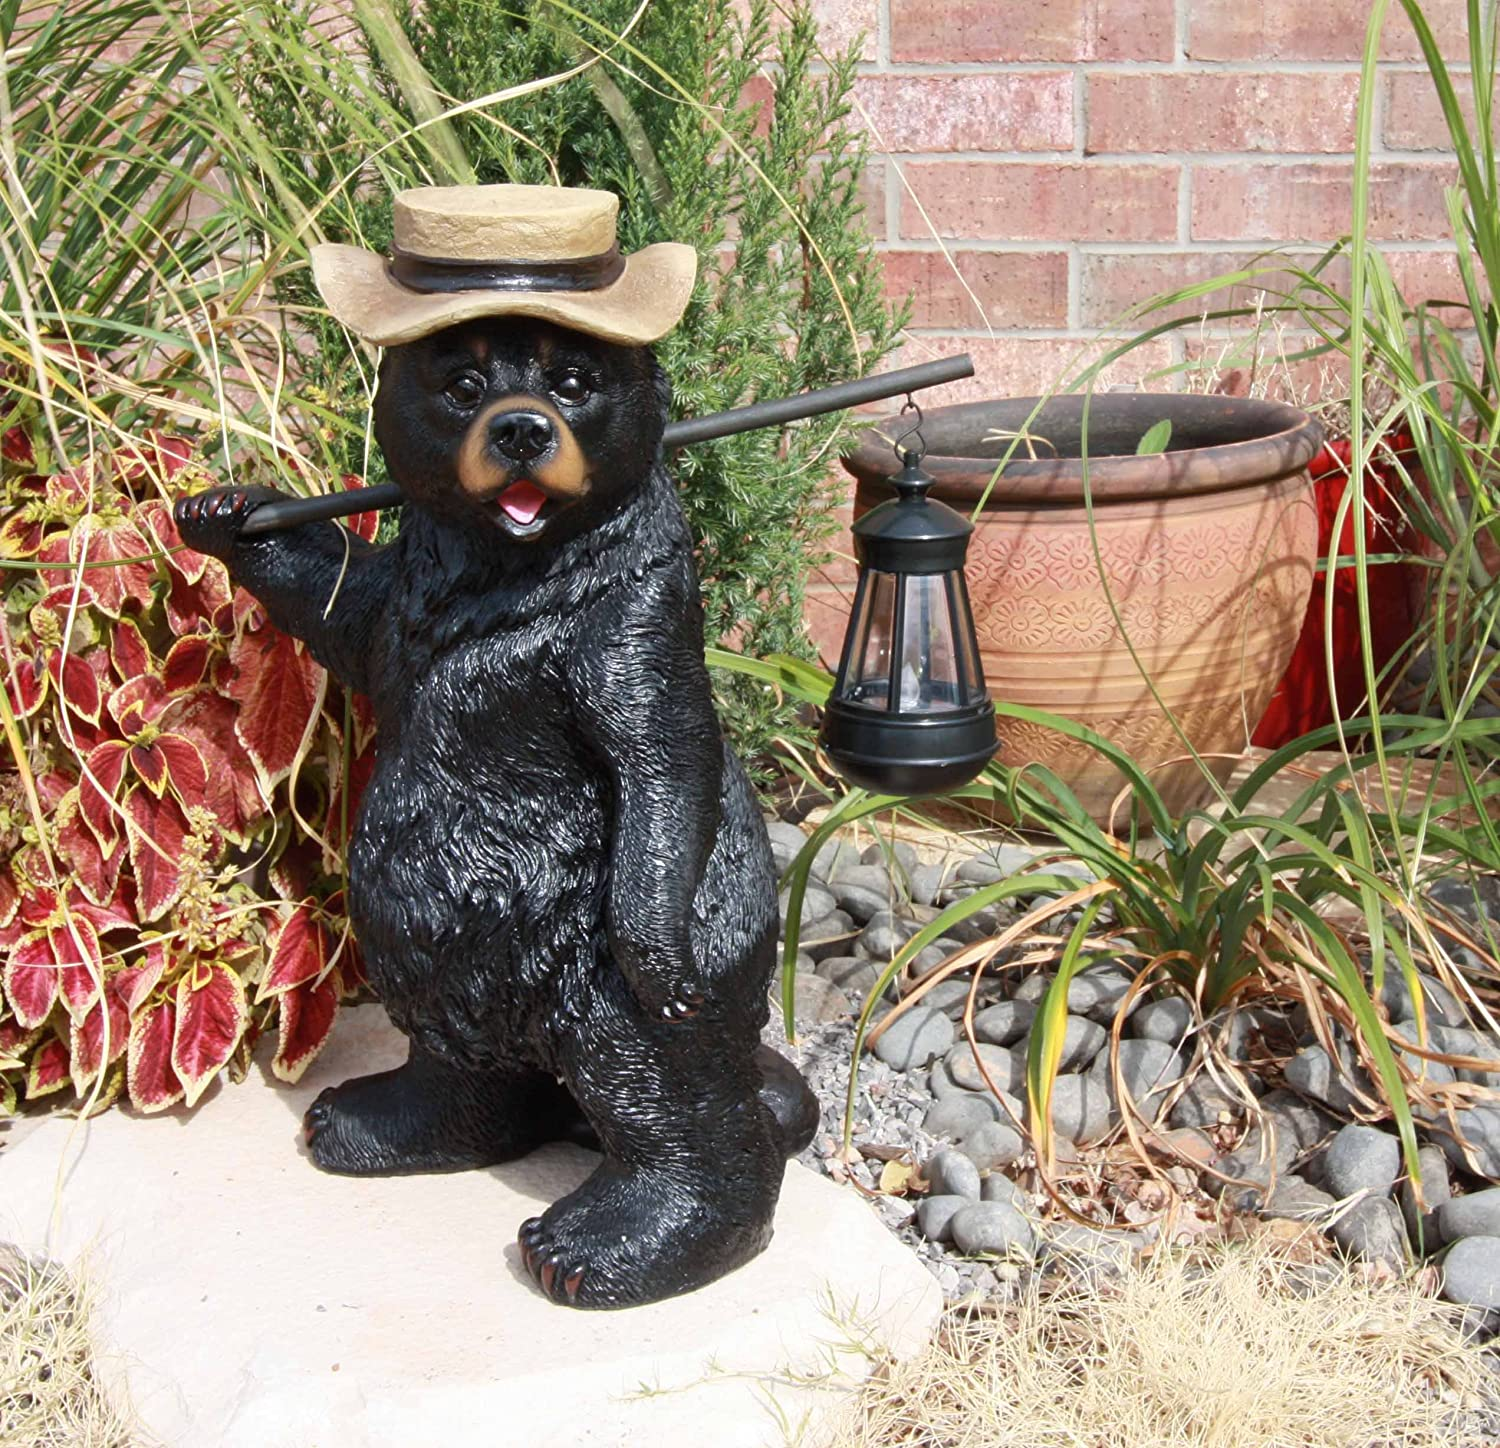 Ebros Whimsical Rustic Forest Outdoor Hiking Black Bear Statue With Solar LED Light Lantern Lamp Guest Greeter Home Decor Collectible Sculpture For Cabin Lodge Nature Lovers Camping Bears Statue